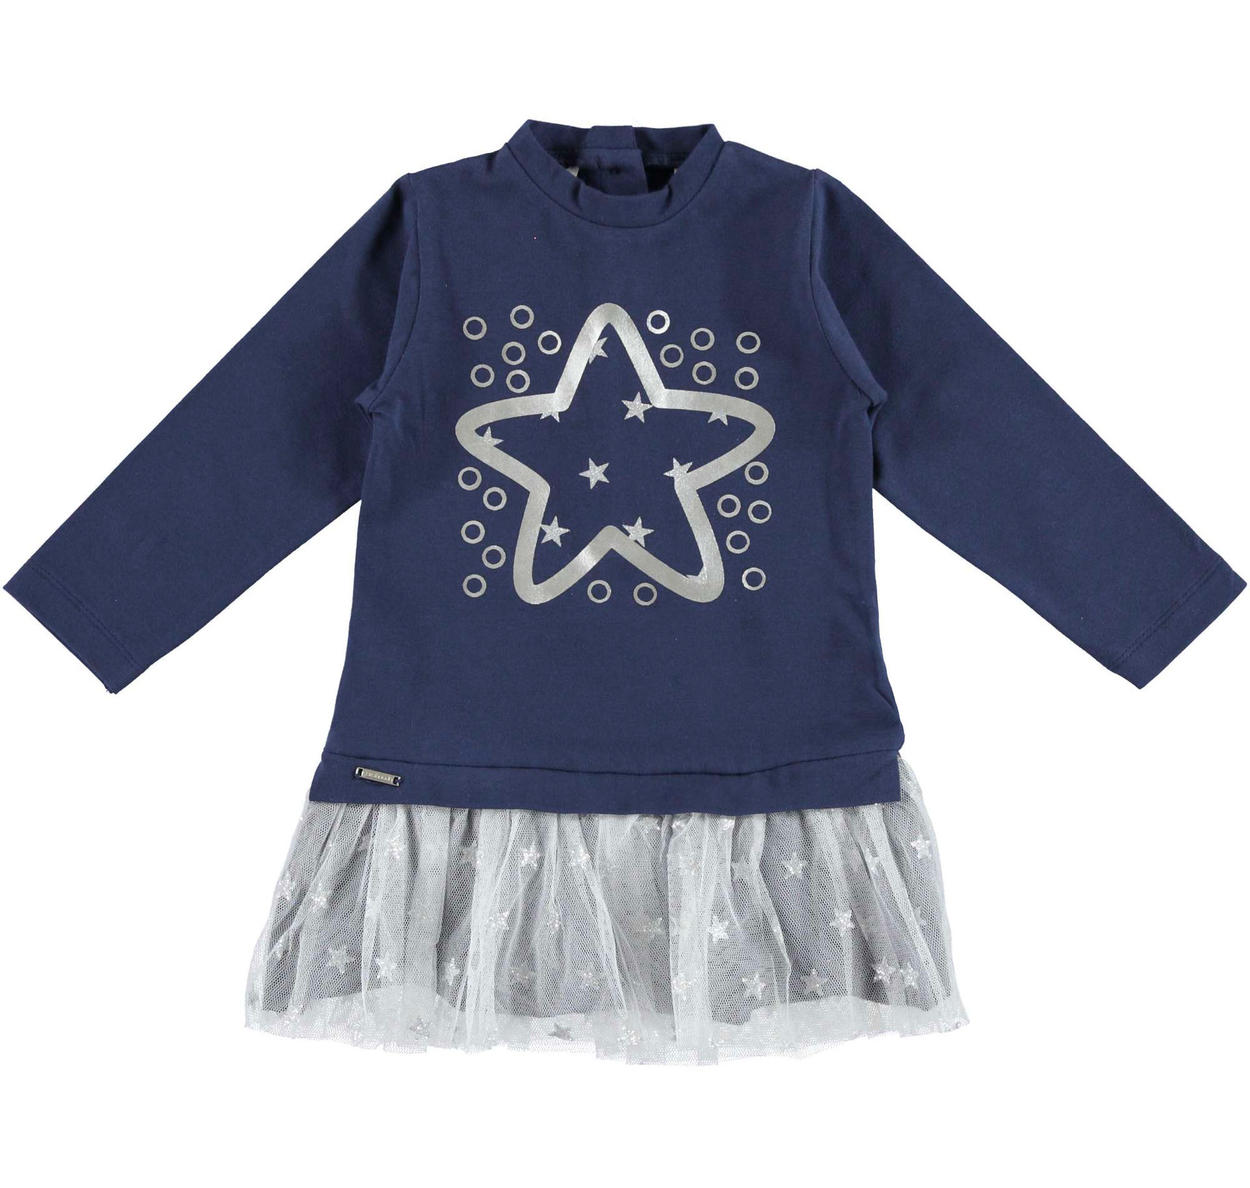 6adb790b0 Sarabanda dress with star and tulle skirt for girls from 6 months to 7  years NAVY